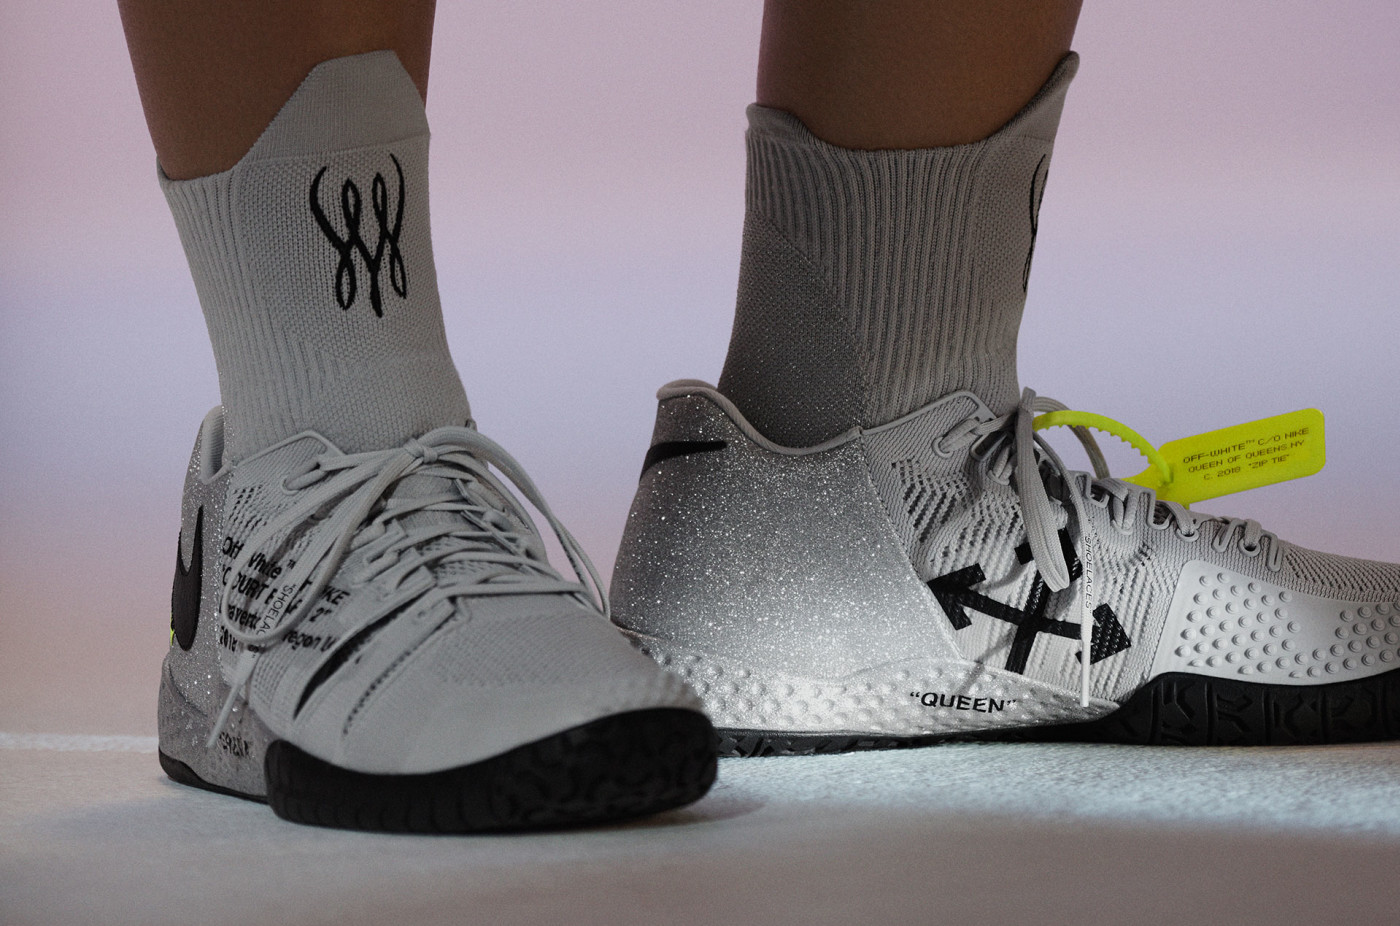 Virgil Abloh x Nike x Serena Williams Queen Collection NikeCourt Flare 2 (Pair)